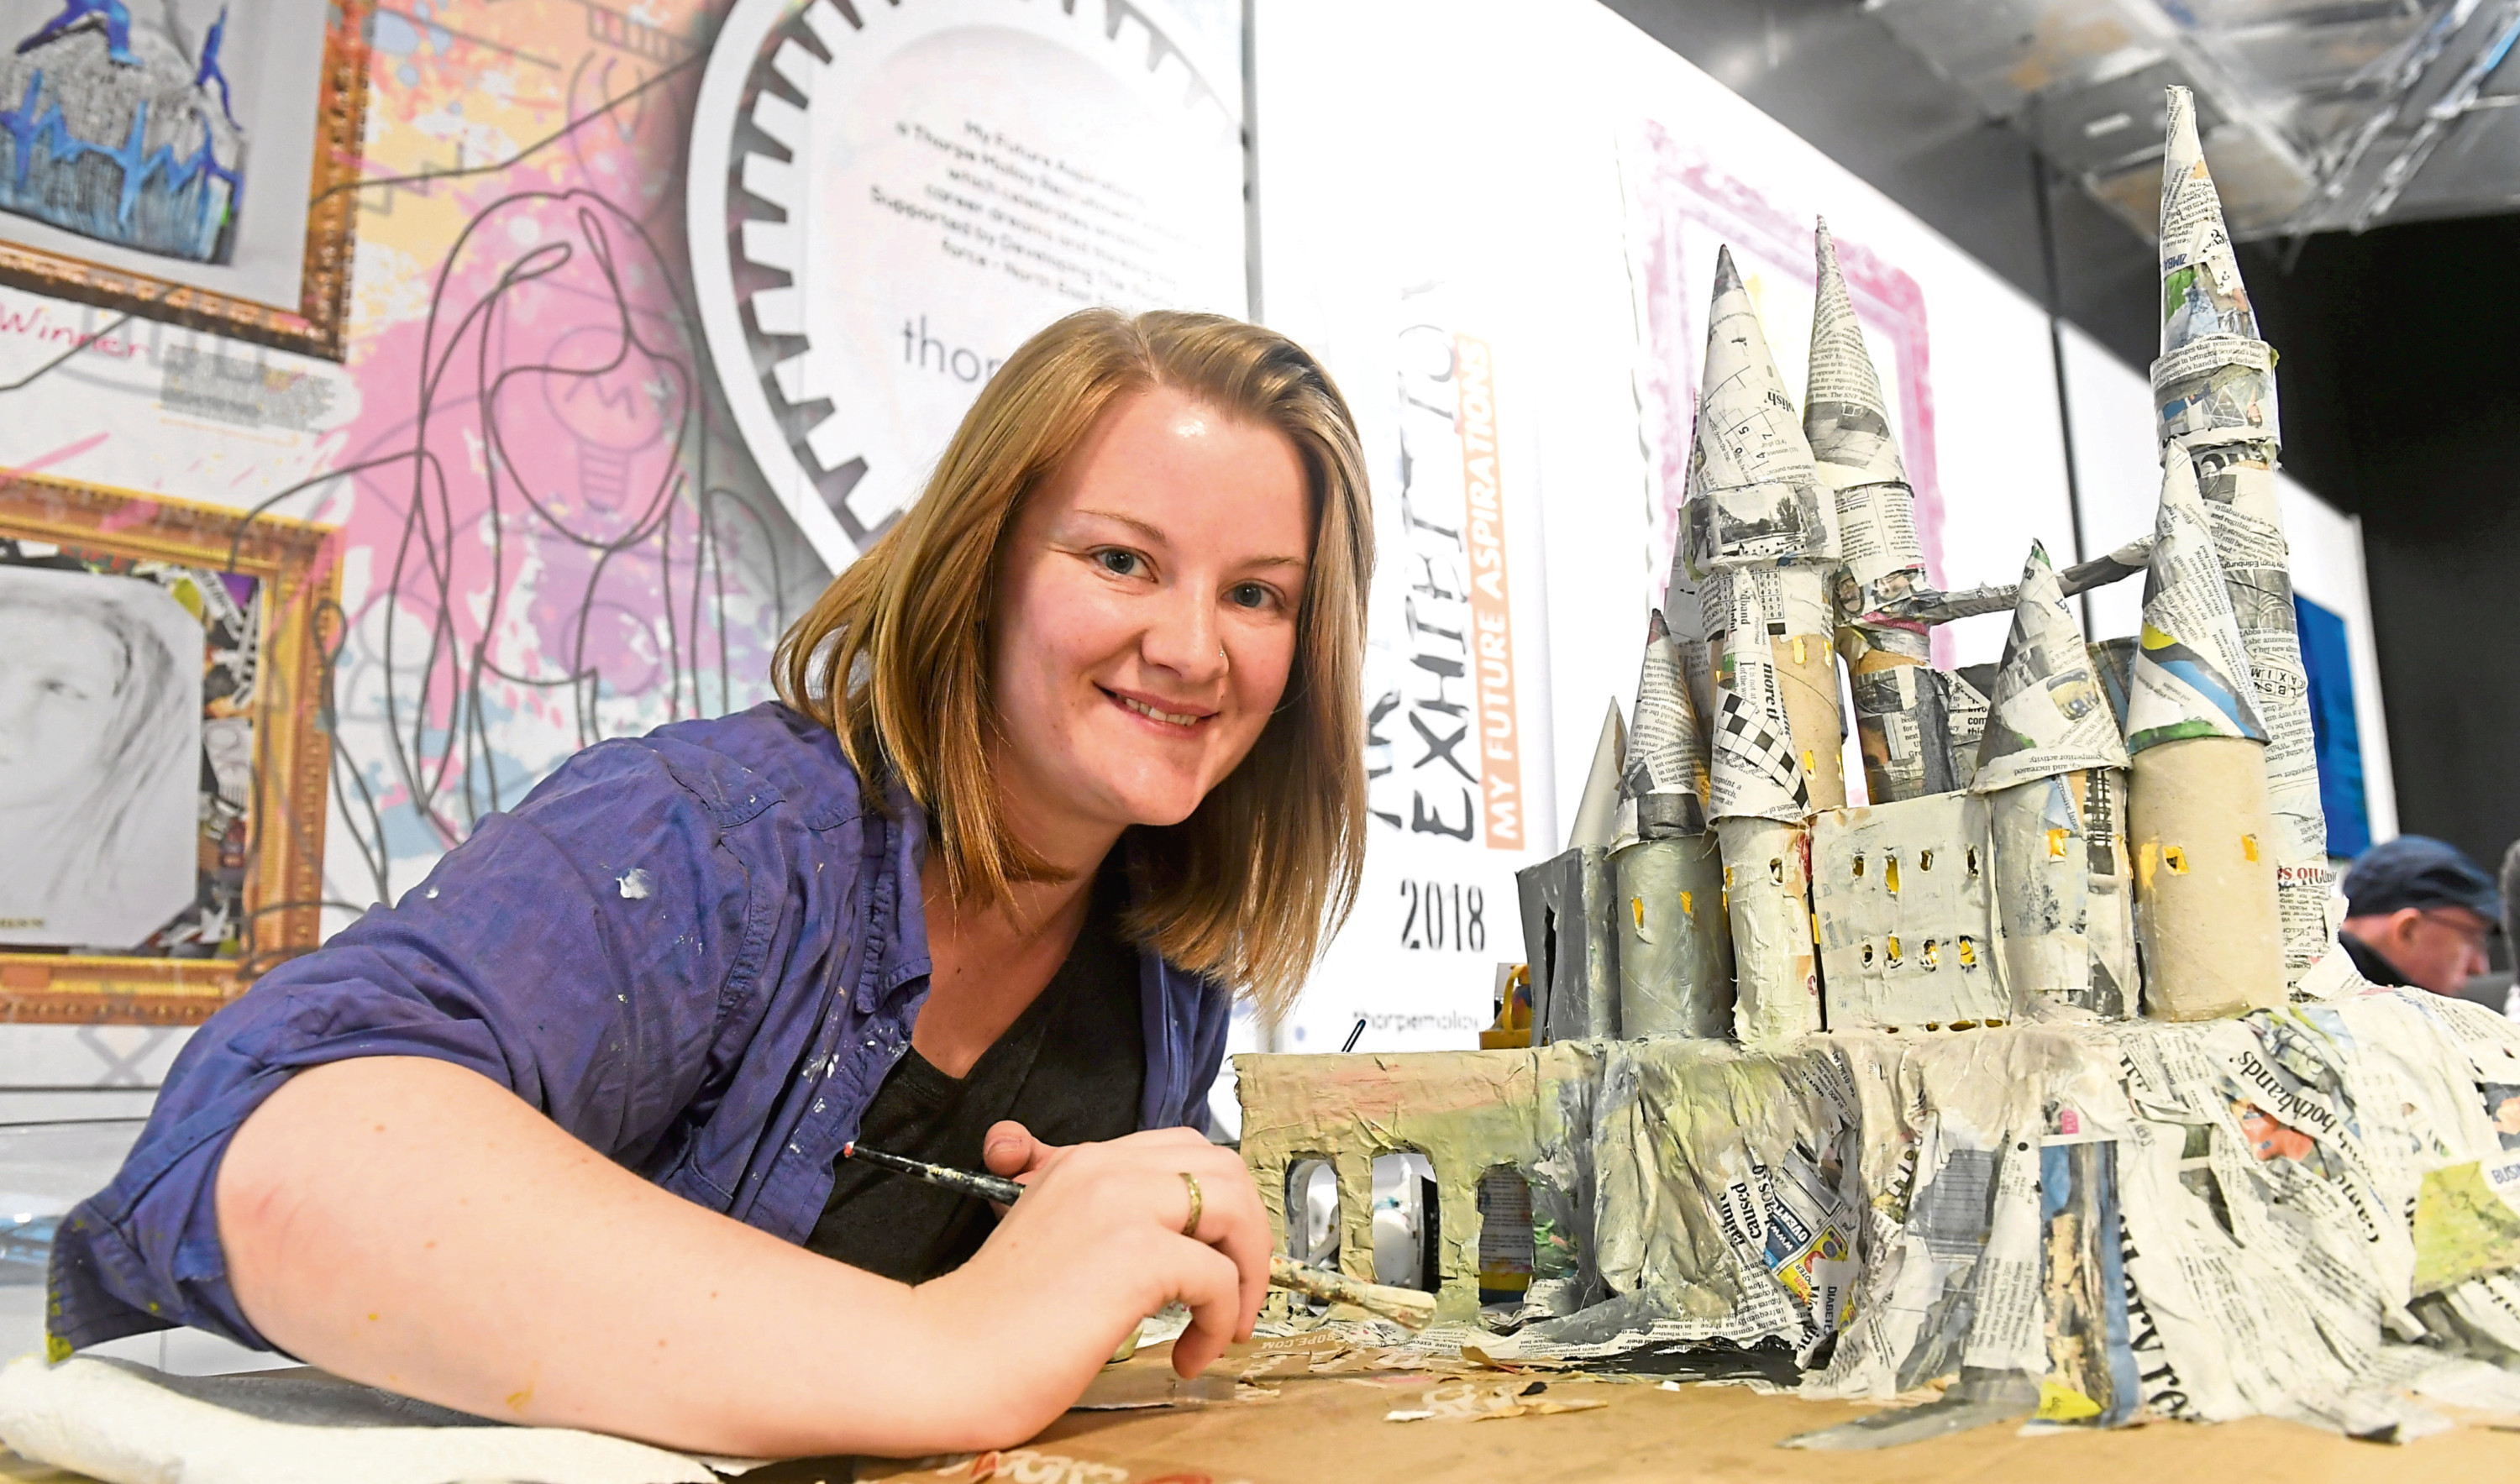 Catherine Redgate hosted a Harry Potter-themed artists workshop at Cafe Tempo